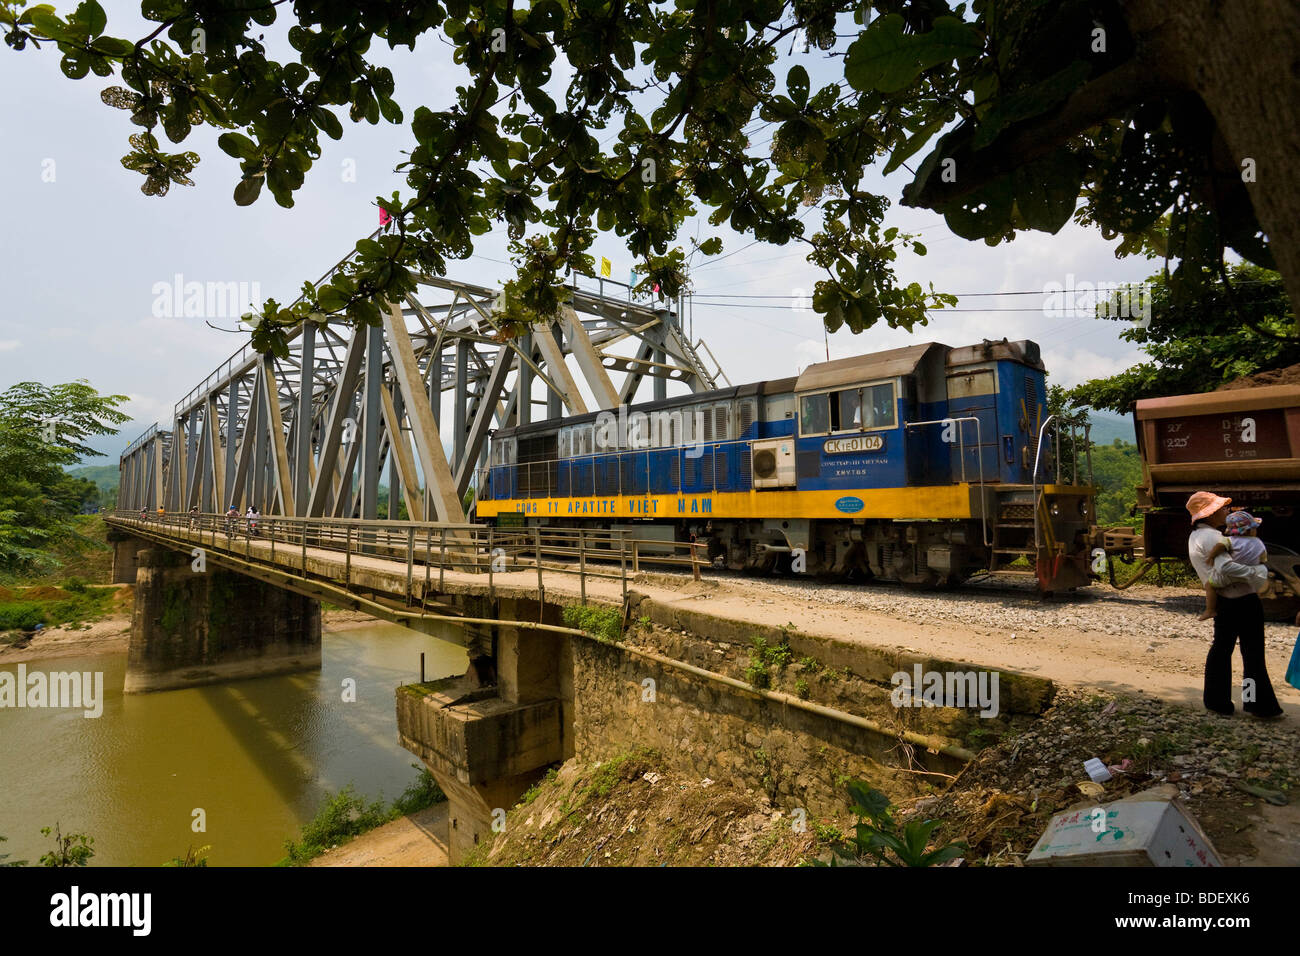 A blue and yellow goods train pulling minerals crosses a steel bridge across a river in the highlands of Vietnam Stock Photo